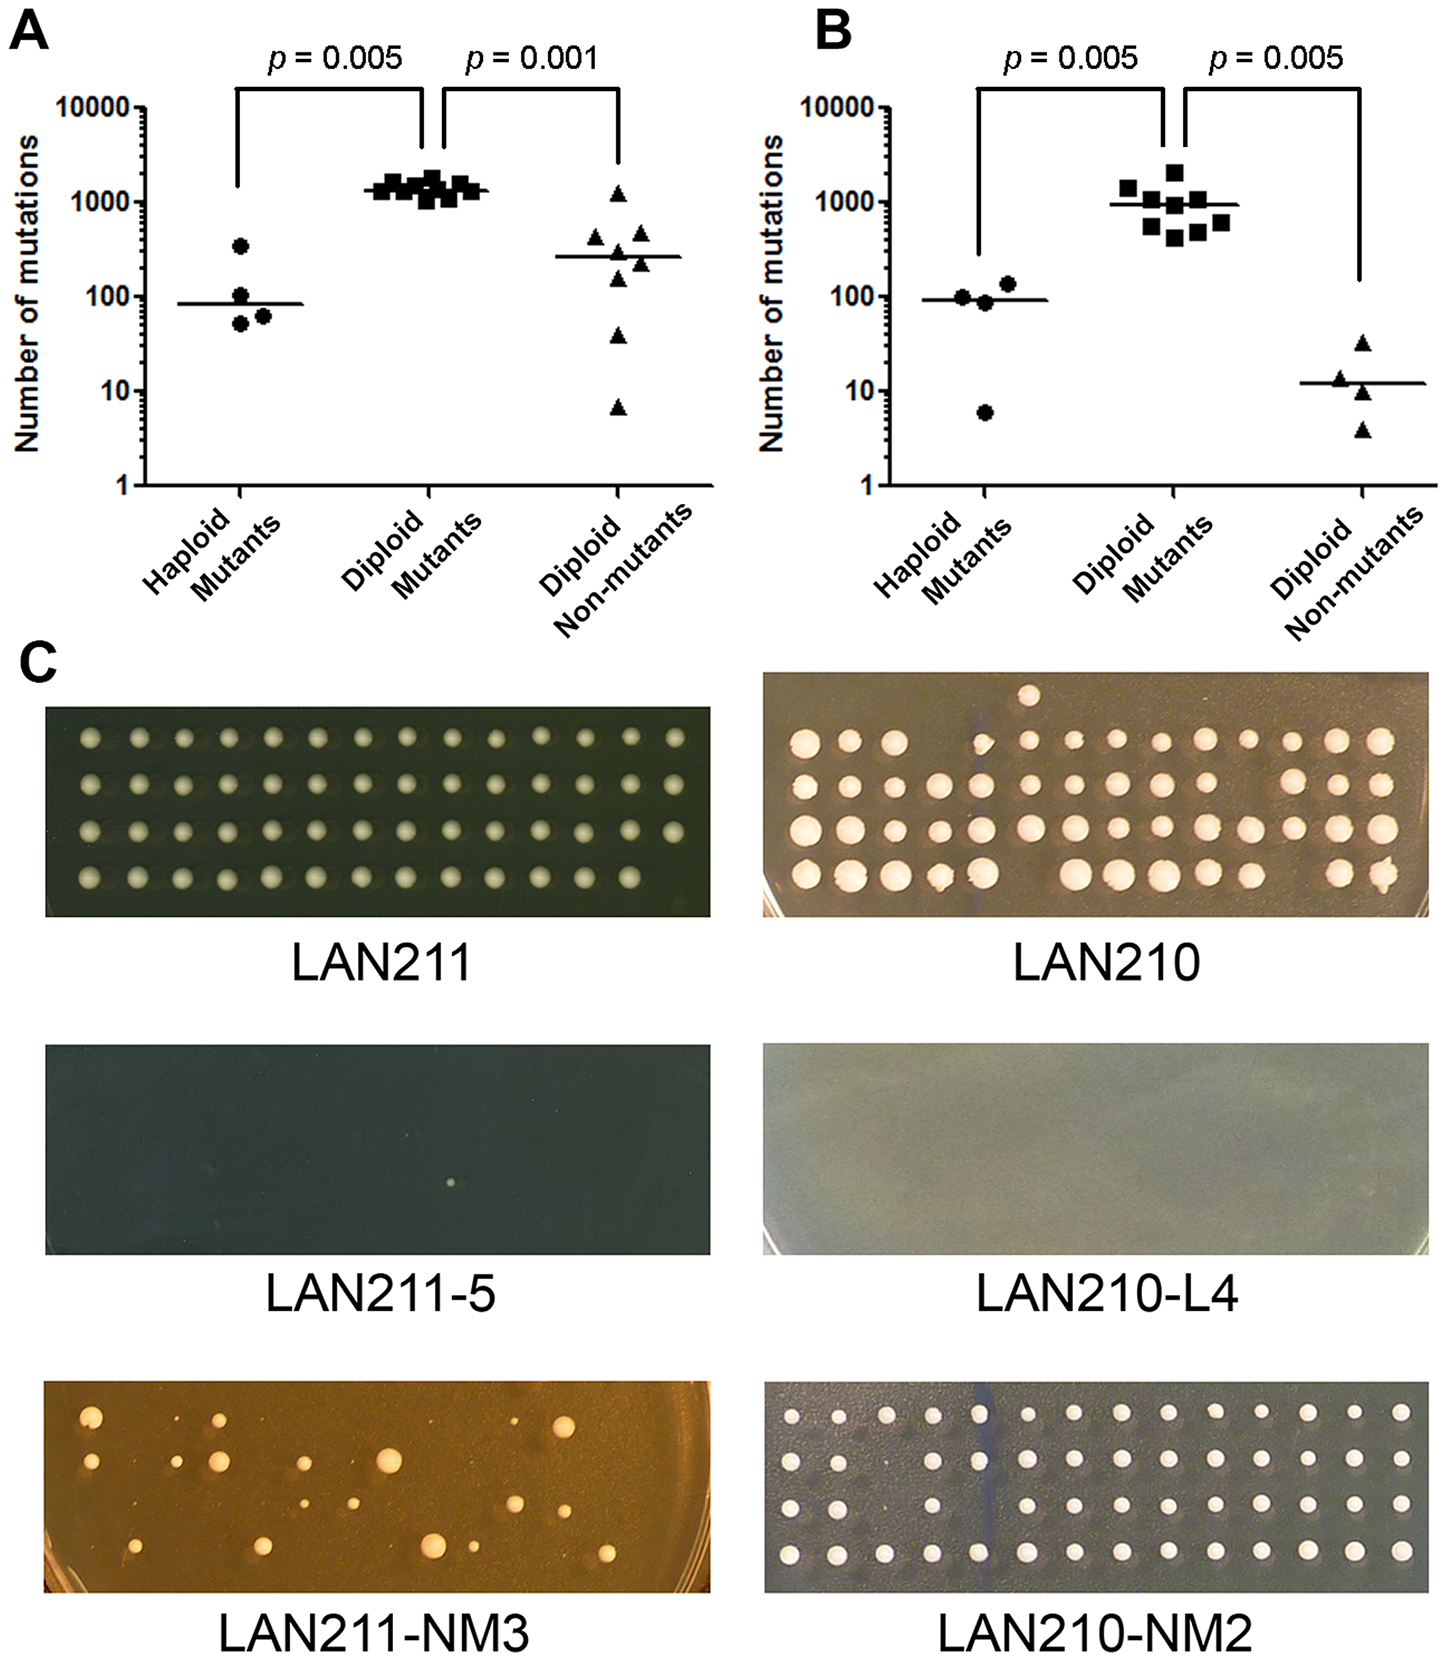 Dependence of mutational load on ploidy and mutant selection.